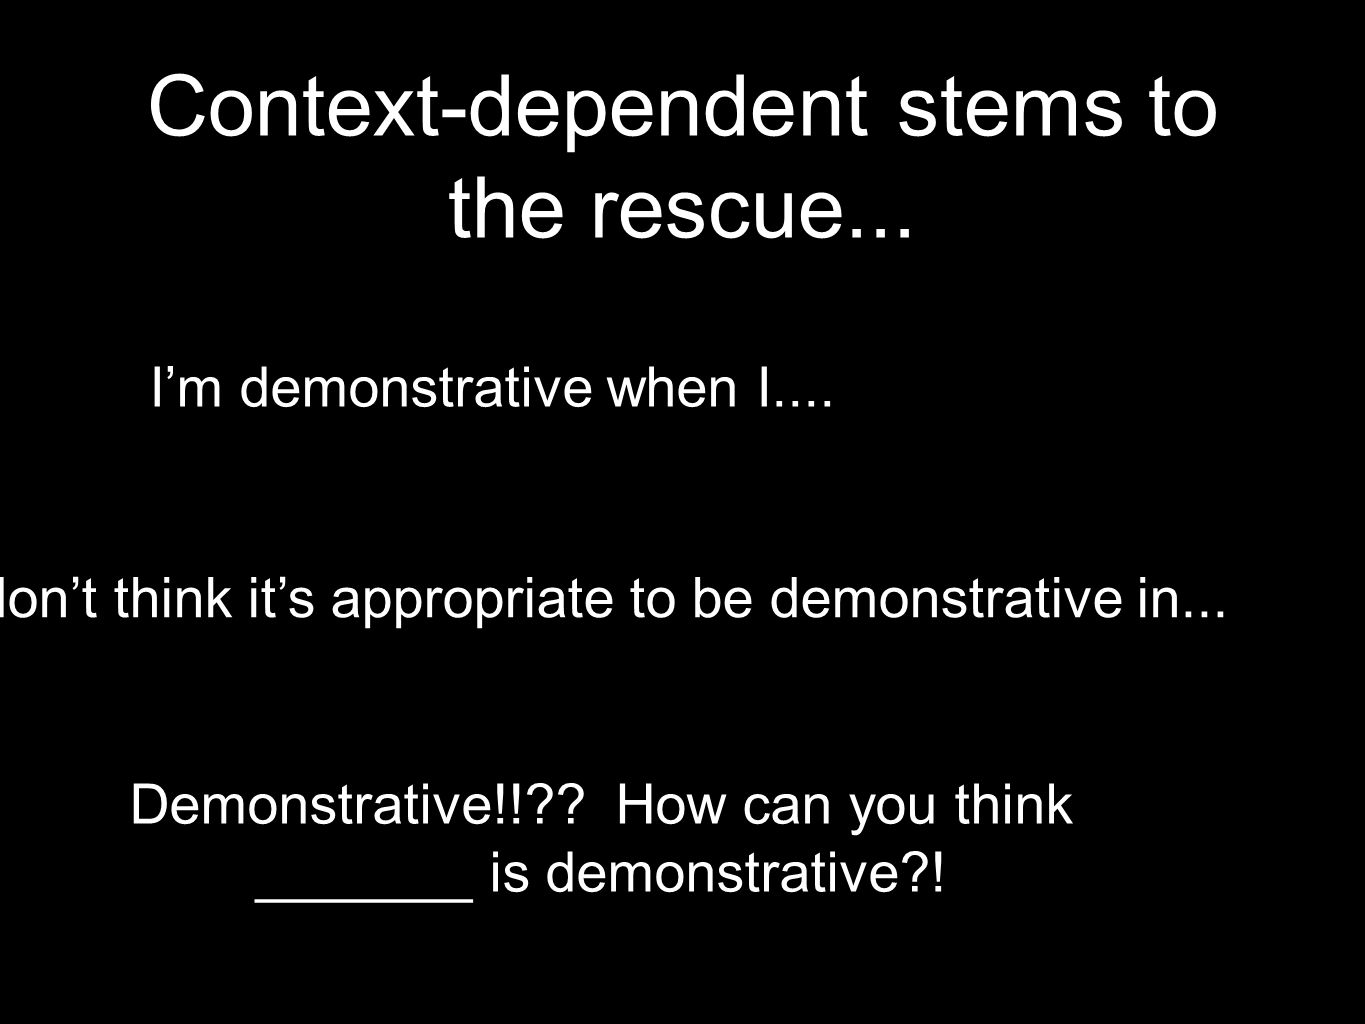 Context-dependent stems to the rescue... Im demonstrative when I....